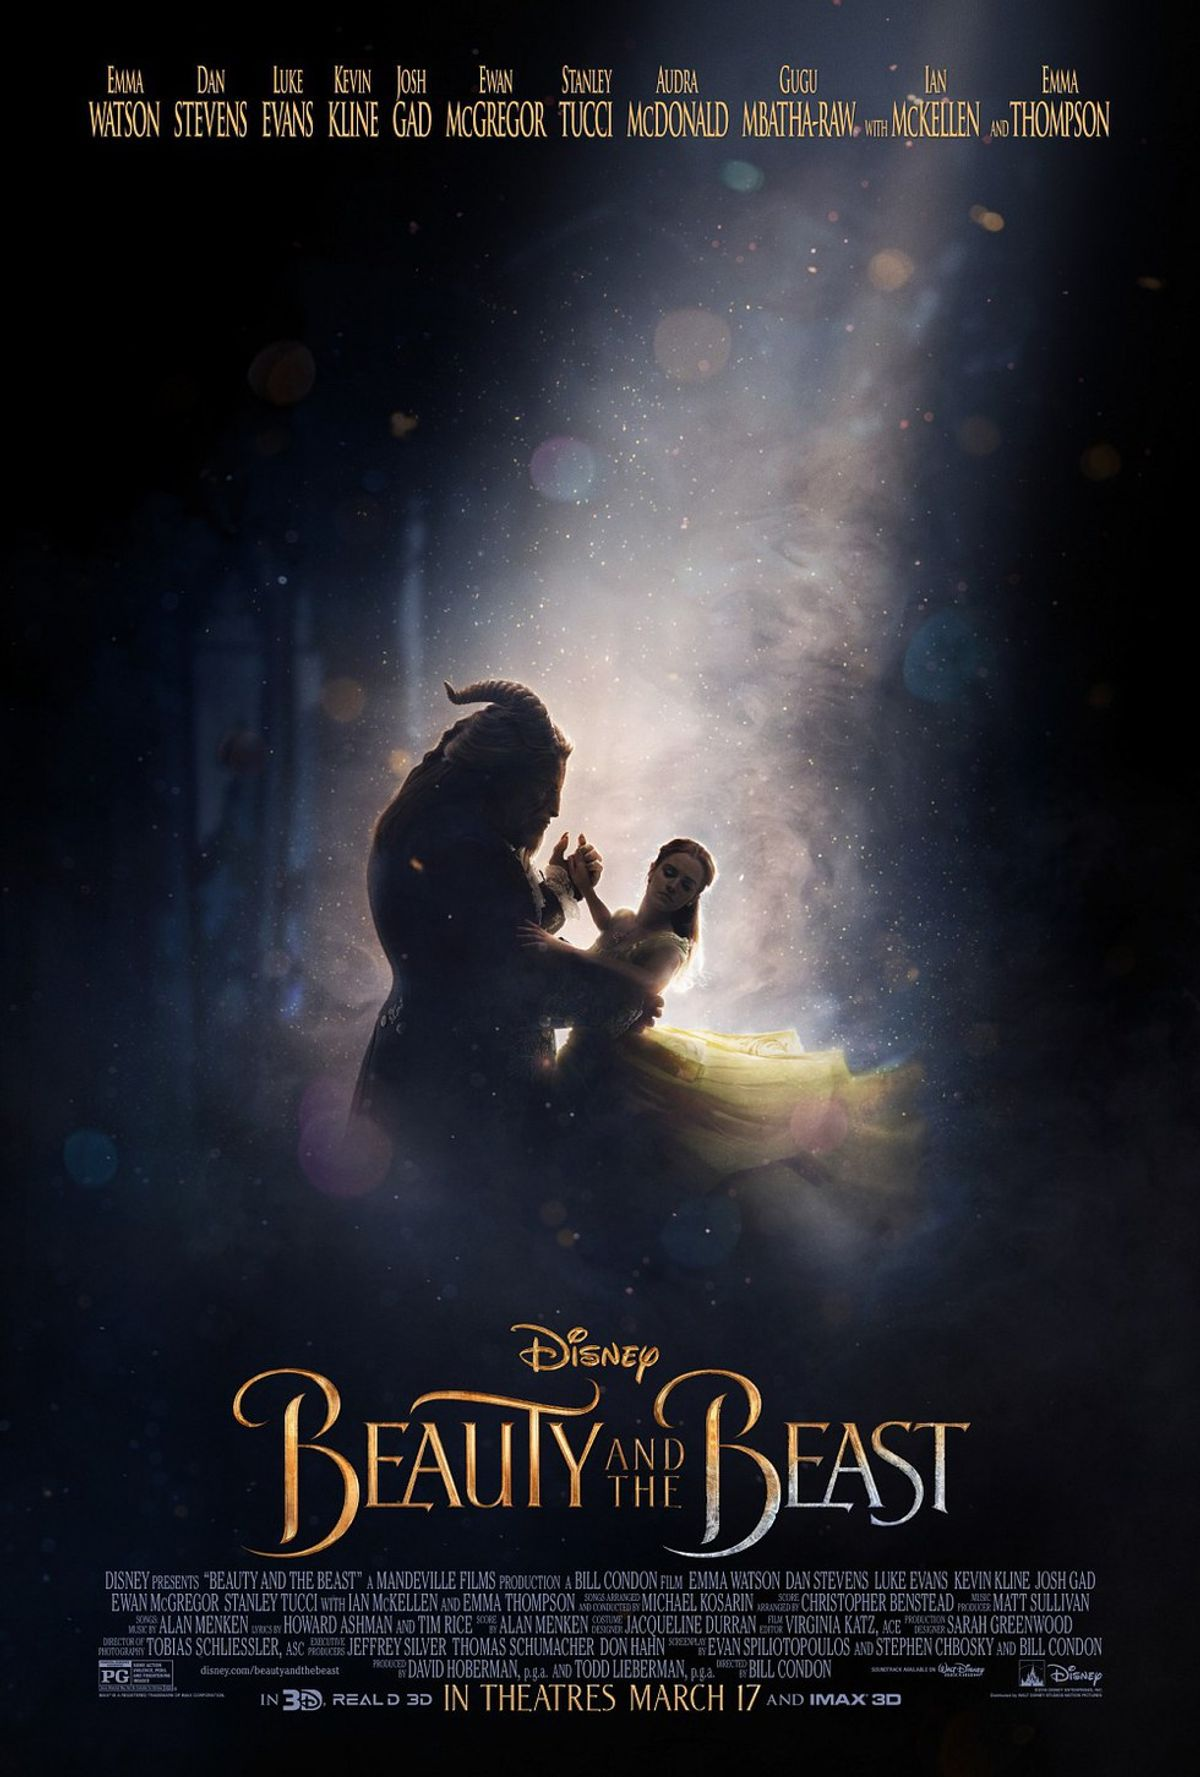 Beauty and the Beast Trailer Beats Fifty Shades and Star Wars for Most Views